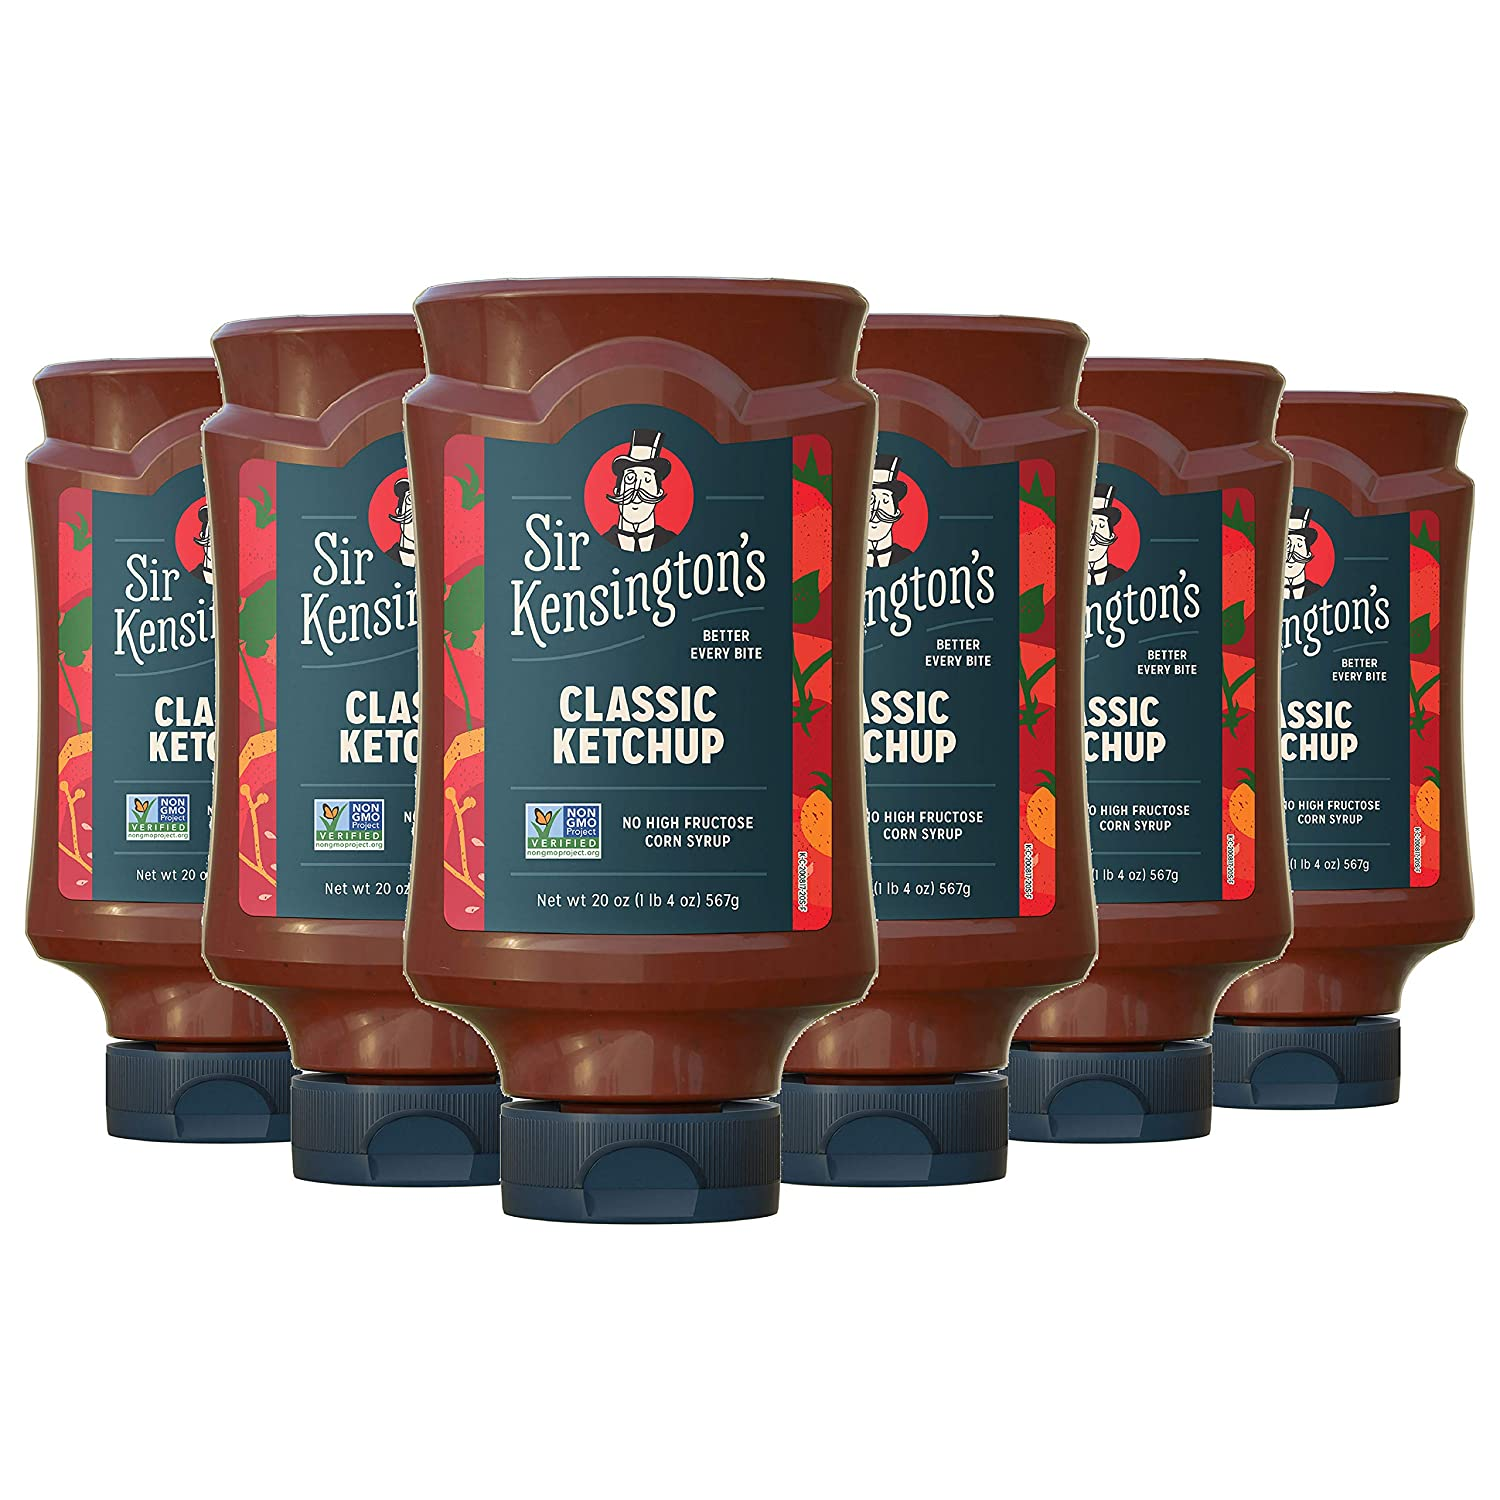 Sir Kensington's Classic Ketchup, From Whole Tomatoes, No High Fructose Corn Syrup, Gluten Free, Certified Vegan, Non- GMO Project Verified, Shelf-Stable, 20 oz pack of 6